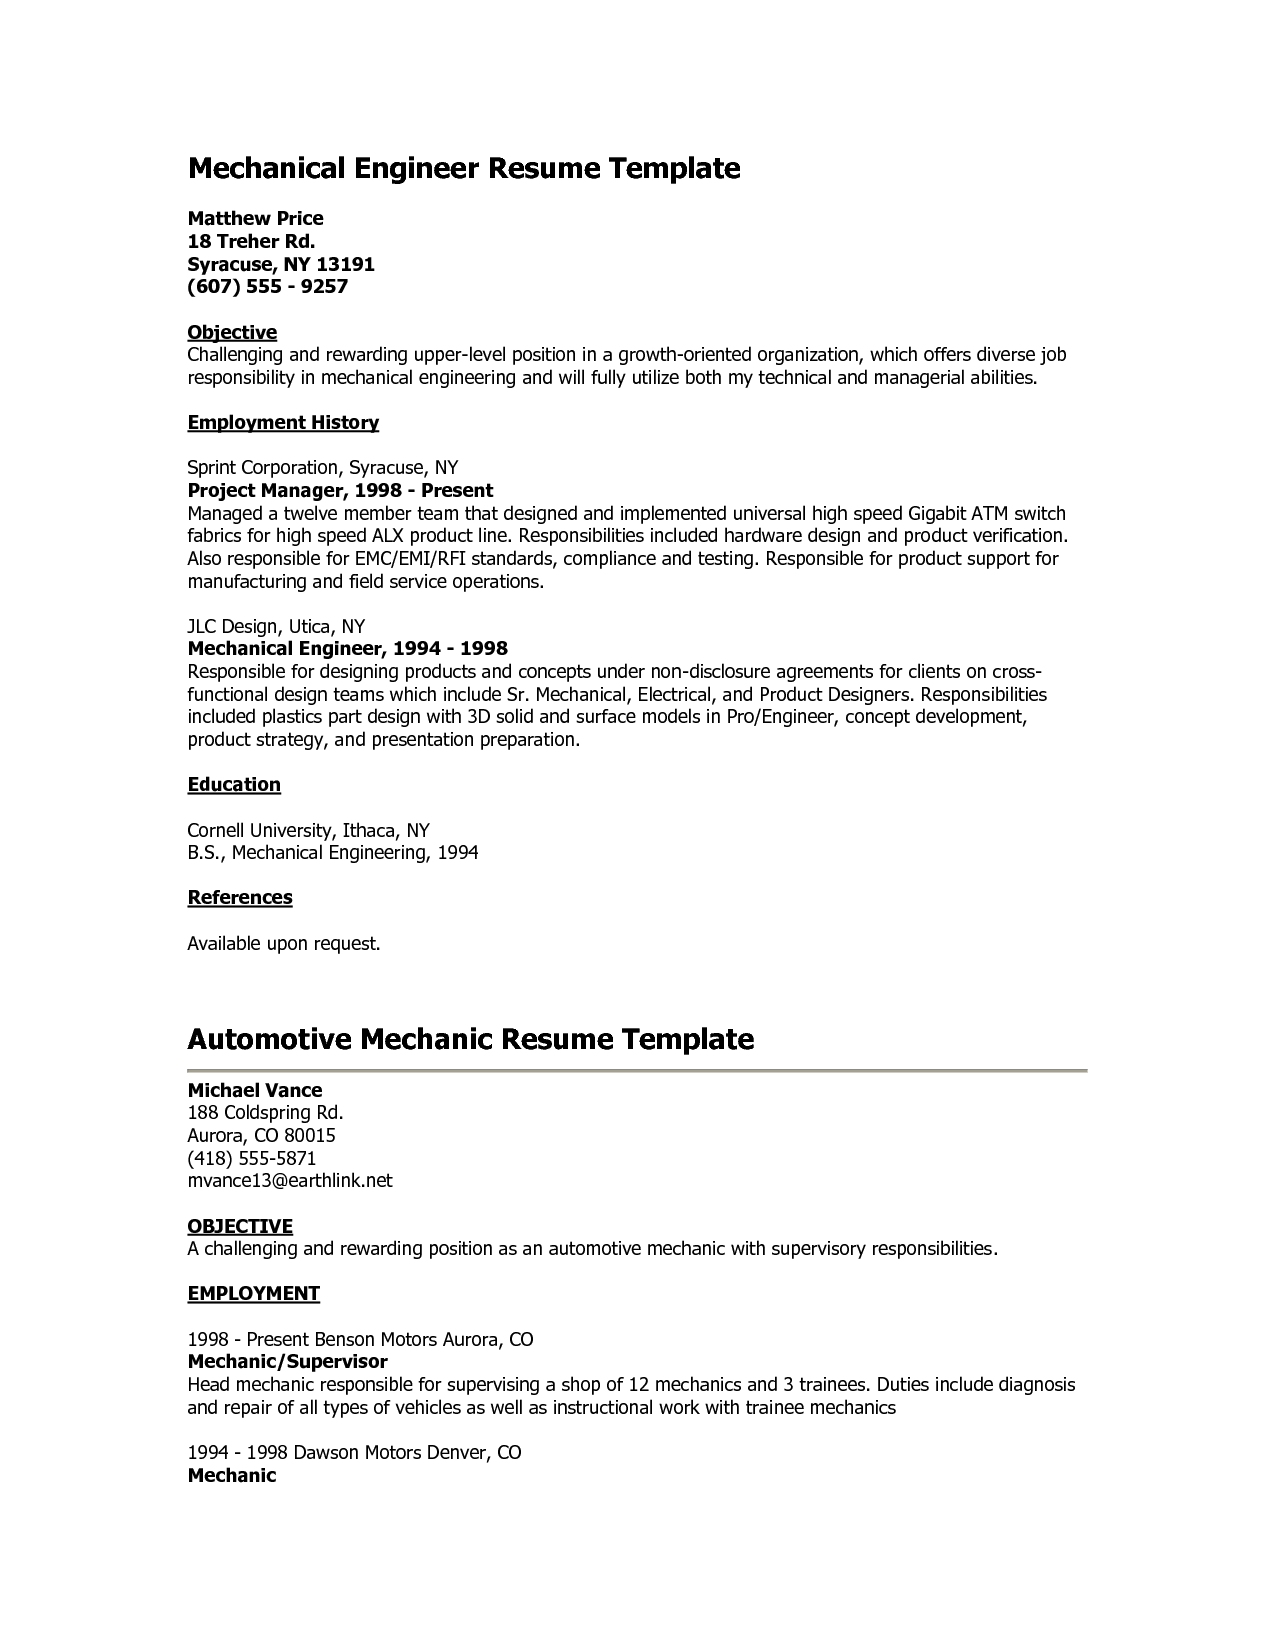 Entry Level Mechanical Engineering Resume Enchanting Bank Teller Resume With No Experience  Httpwww.jobresume.website .